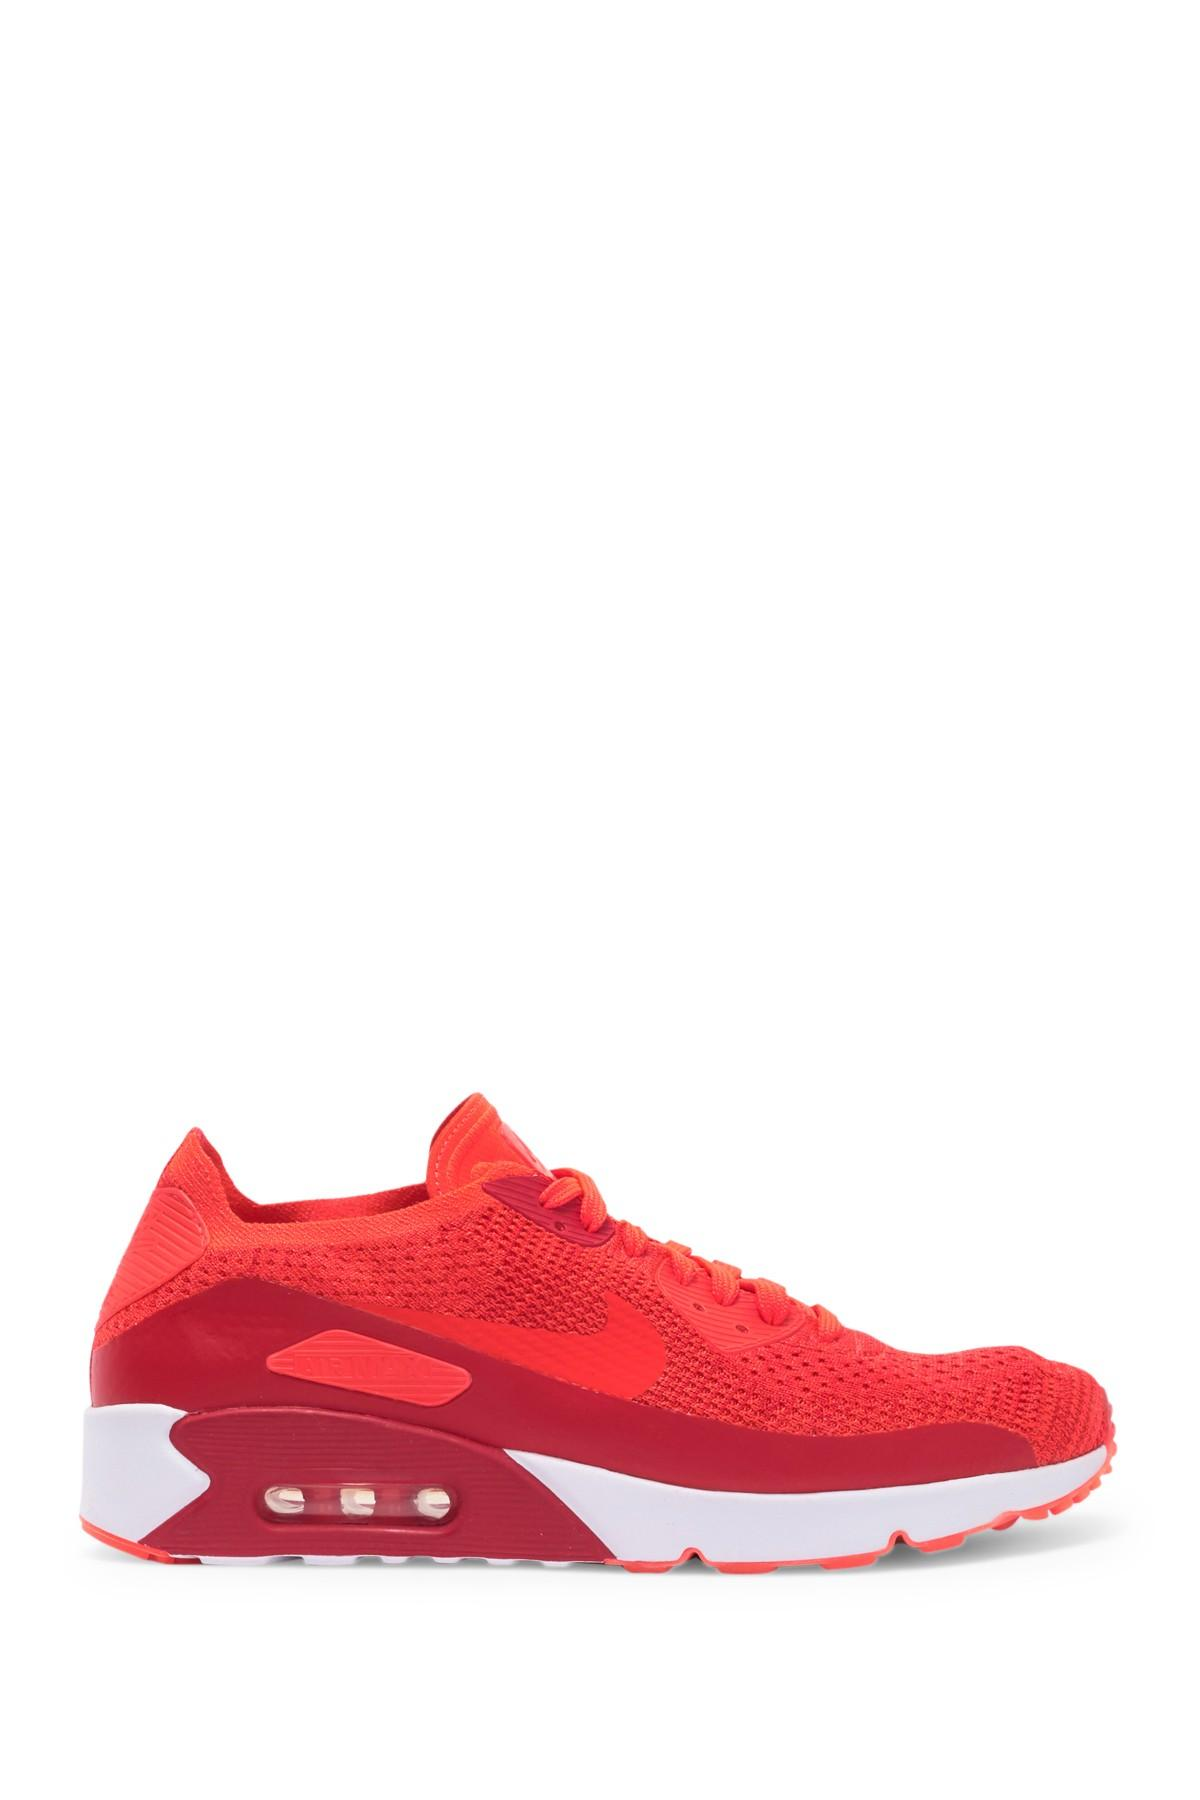 separation shoes d78c3 ef1da Men's Red Air Max 90 Ultra 2.0 Flyknit Sneaker